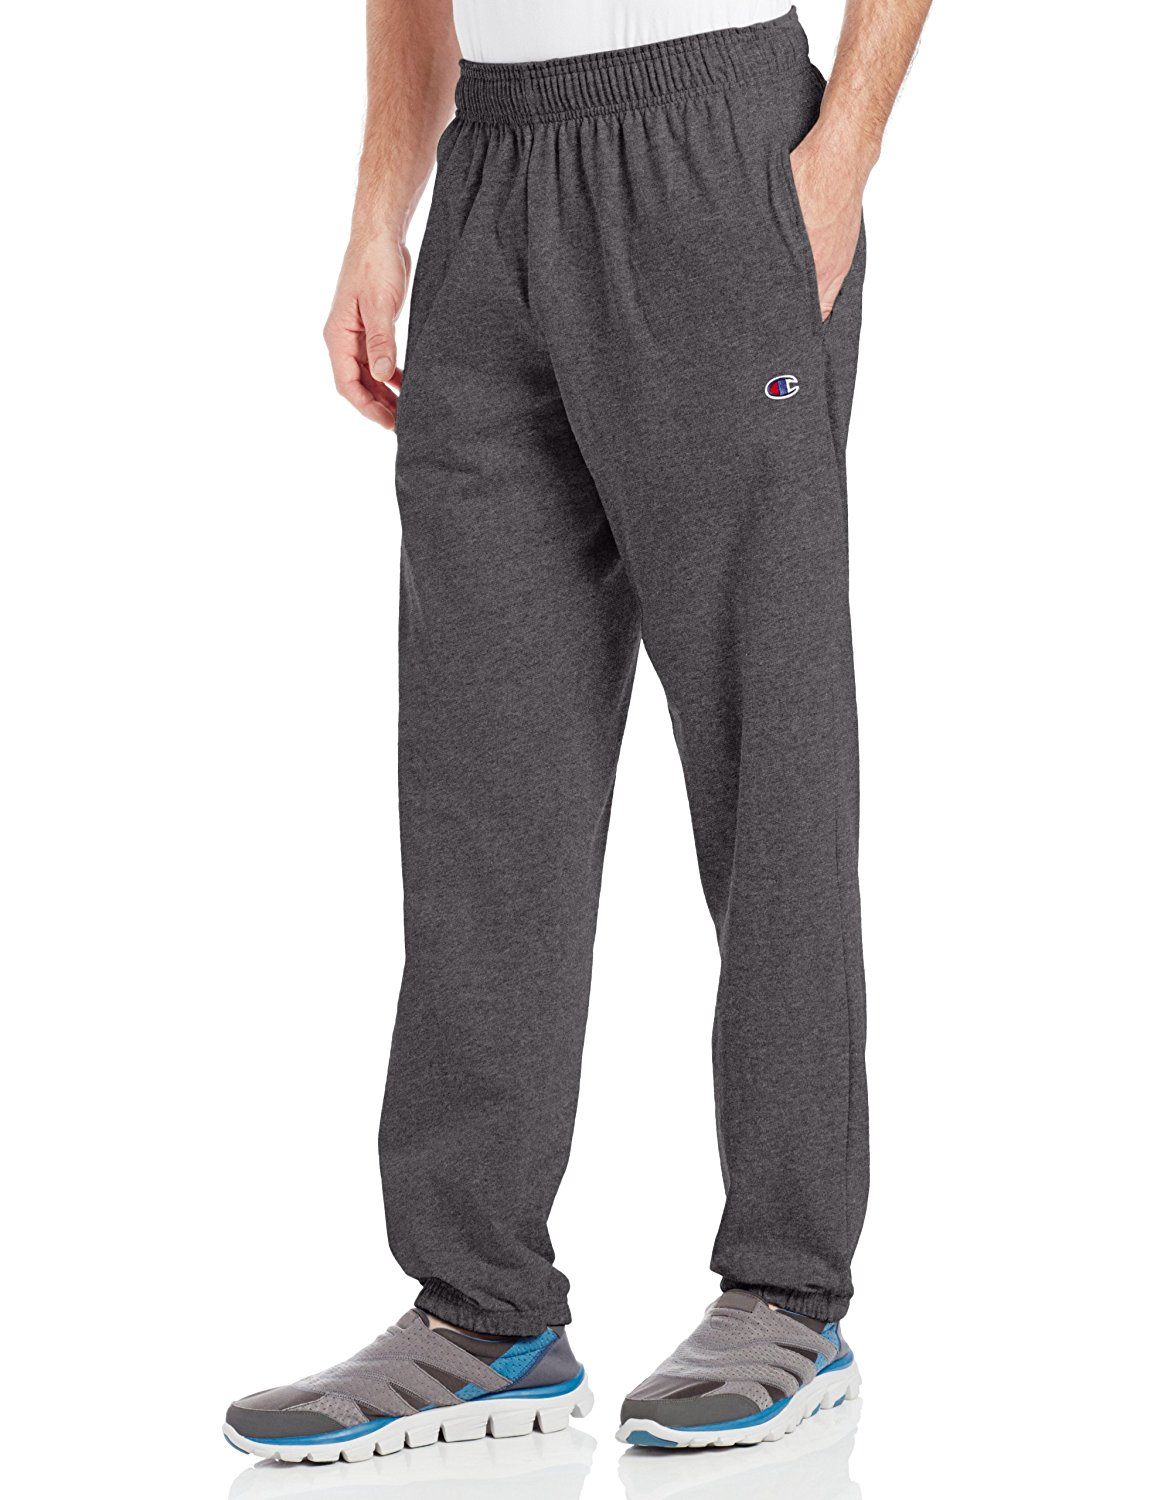 Get a Sporty Workout with Men's Sweatpants